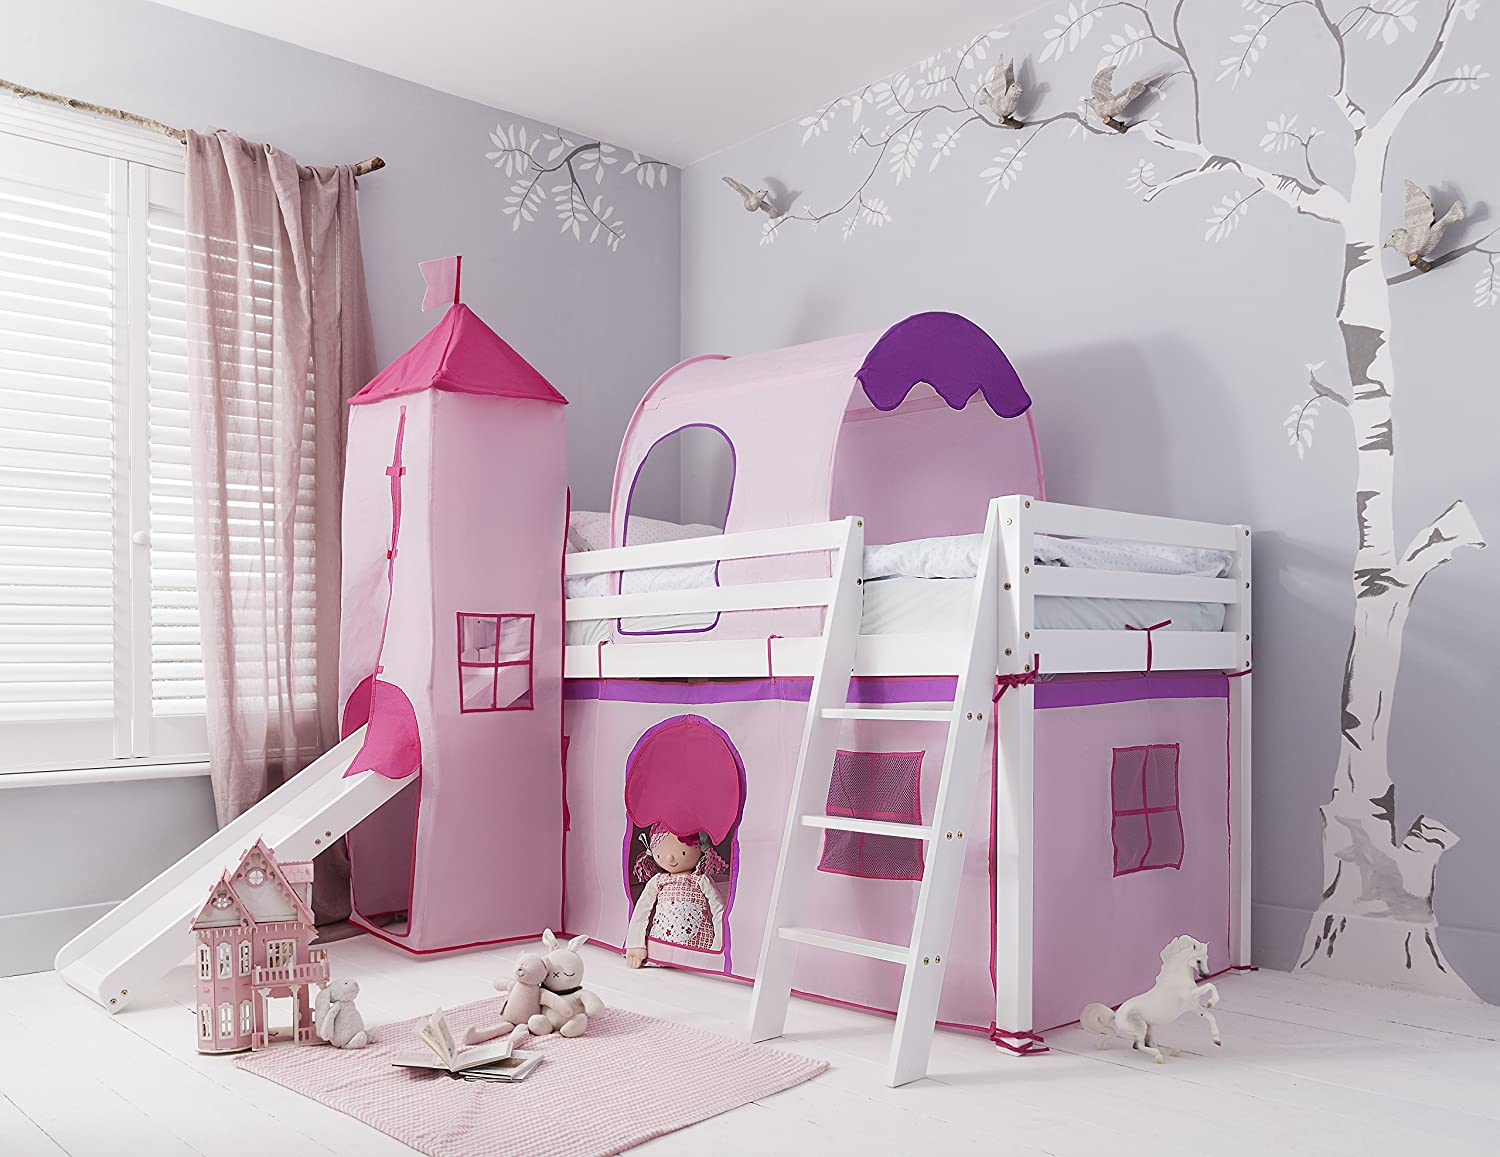 Cabin Bed with Slide Kids Midsleeper in Pink Hideaway with Tent, Tunnel, Tower & Tidy Noa & Nani (White) Noa and Nani